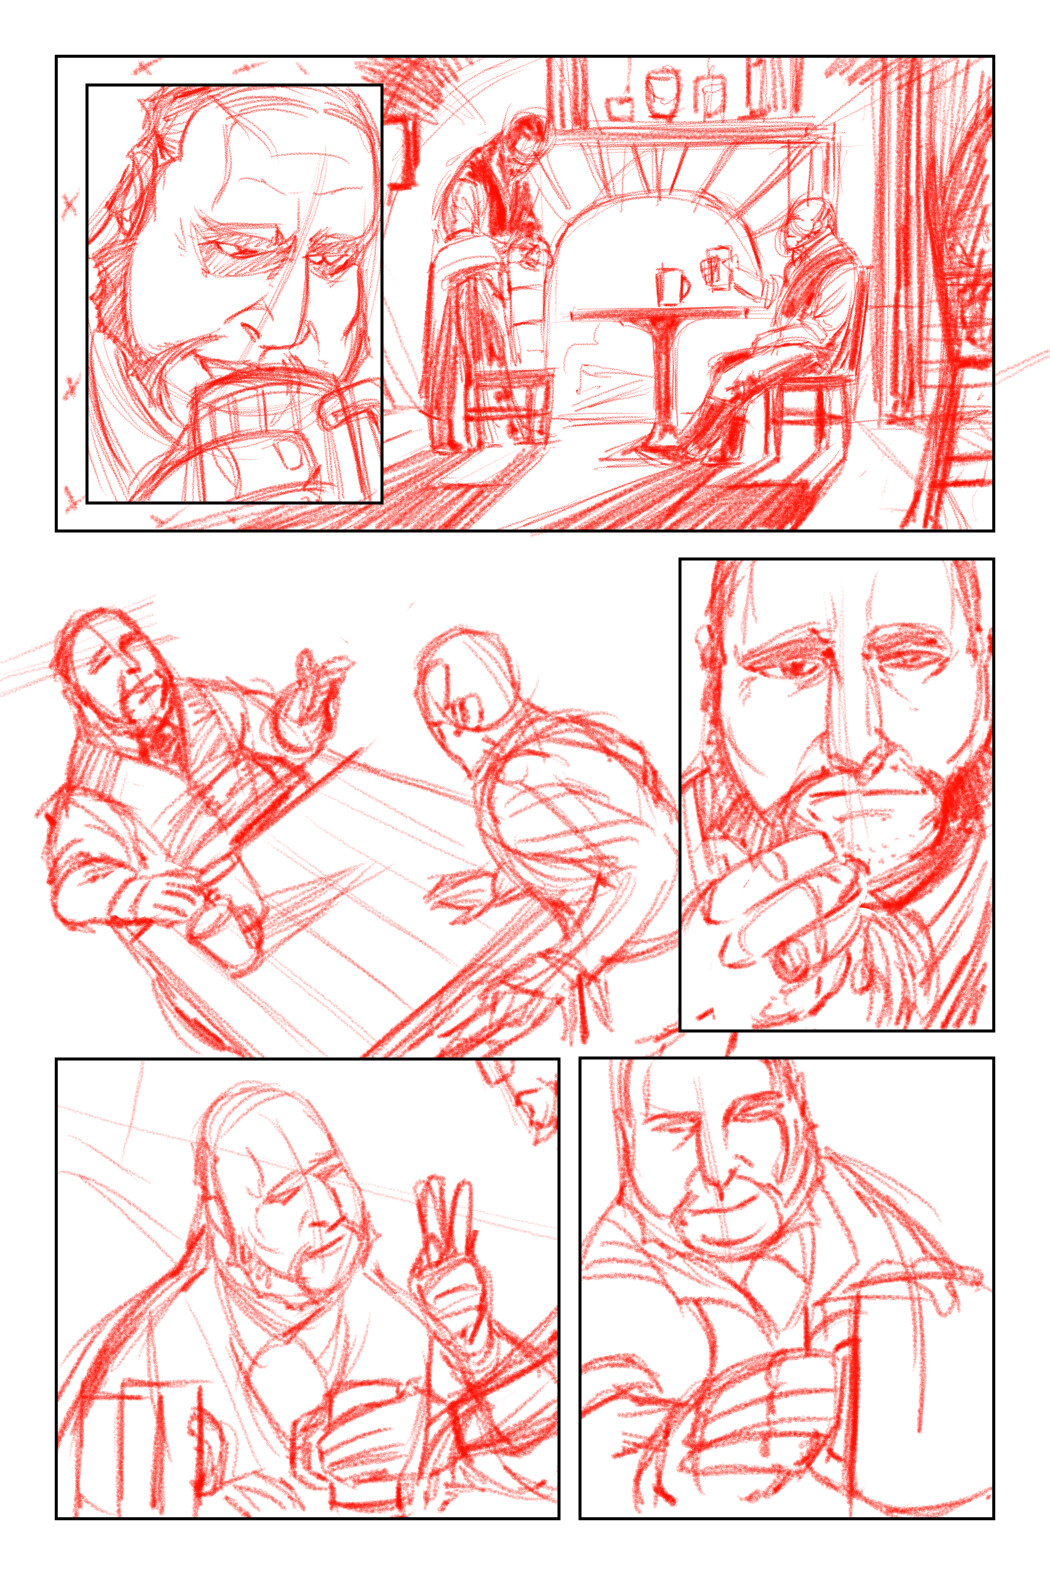 04-More Pencils of Pag 2